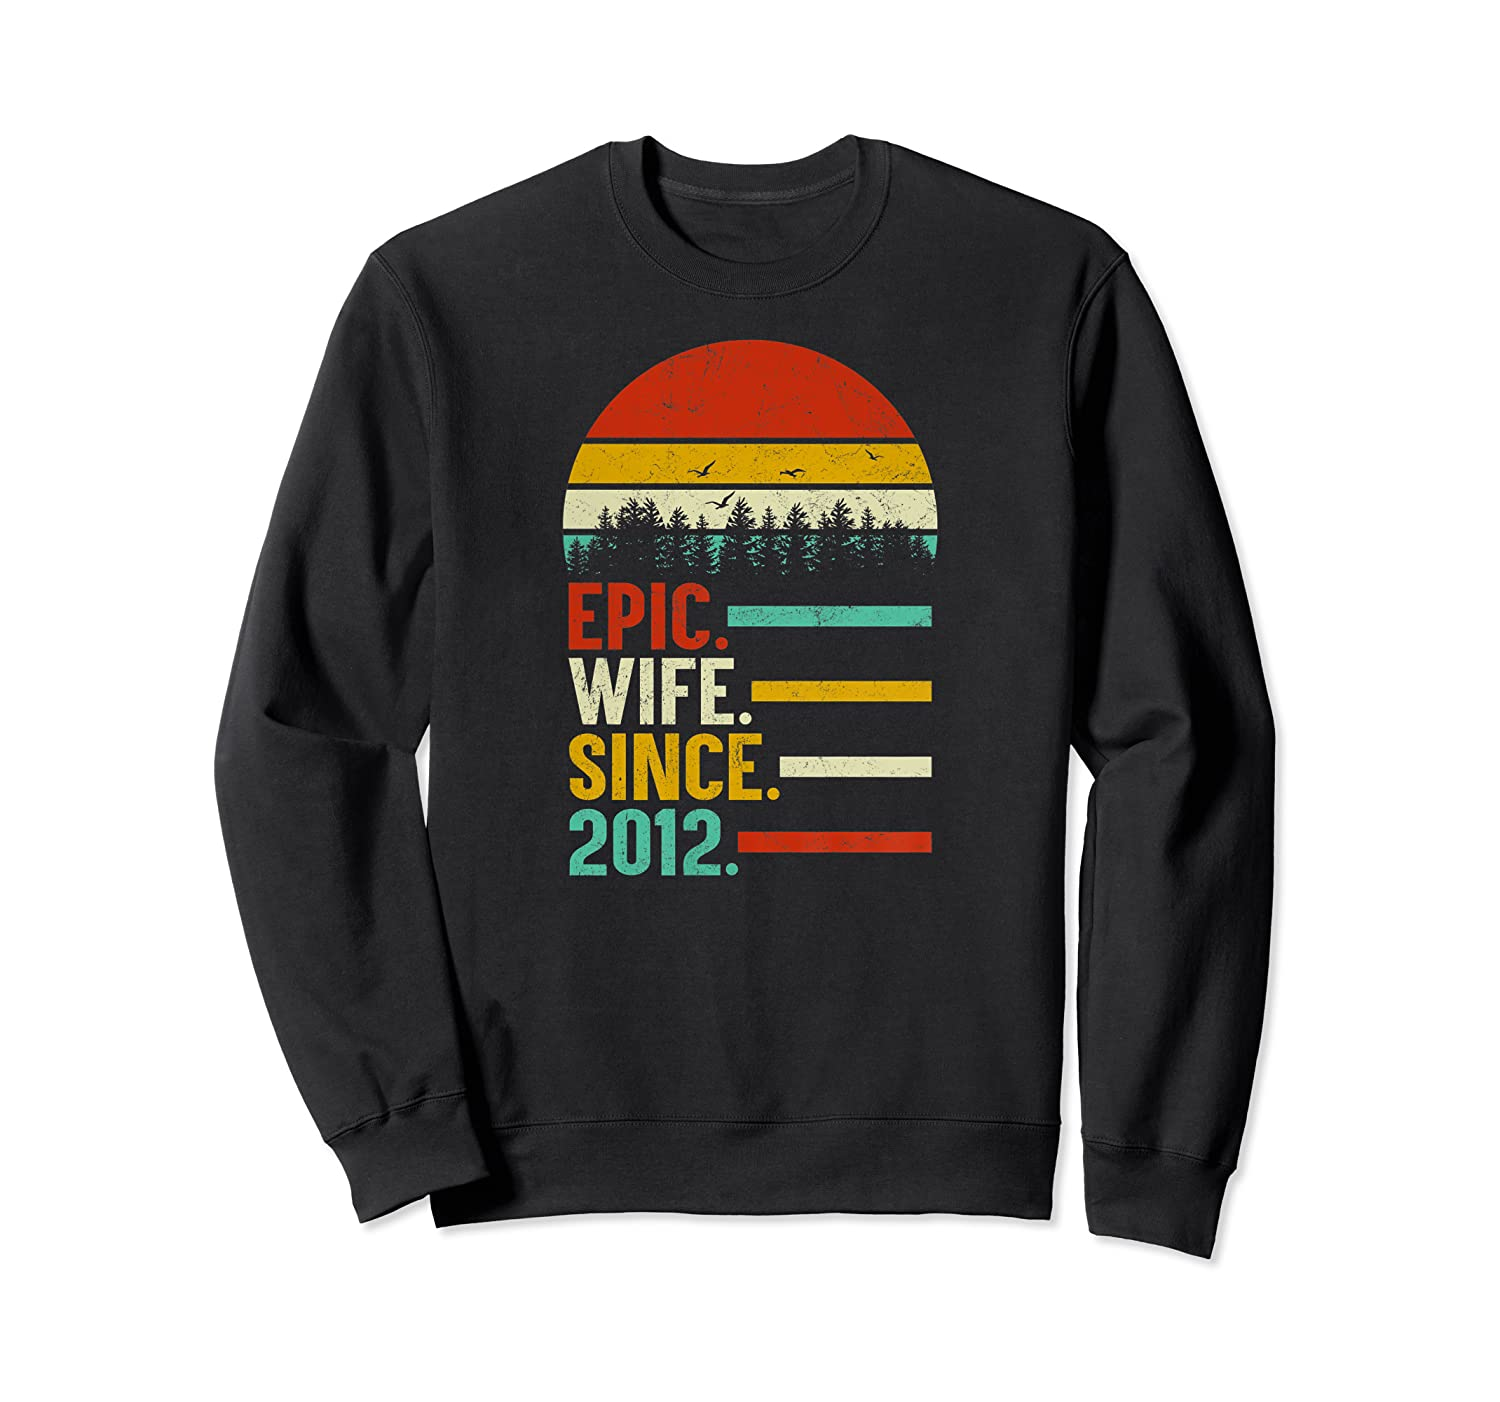 7th Wedding Anniversary Gift Ideas For Her: Womens Epic Wife Since 2012, 7th Wedding Anniversary Gift